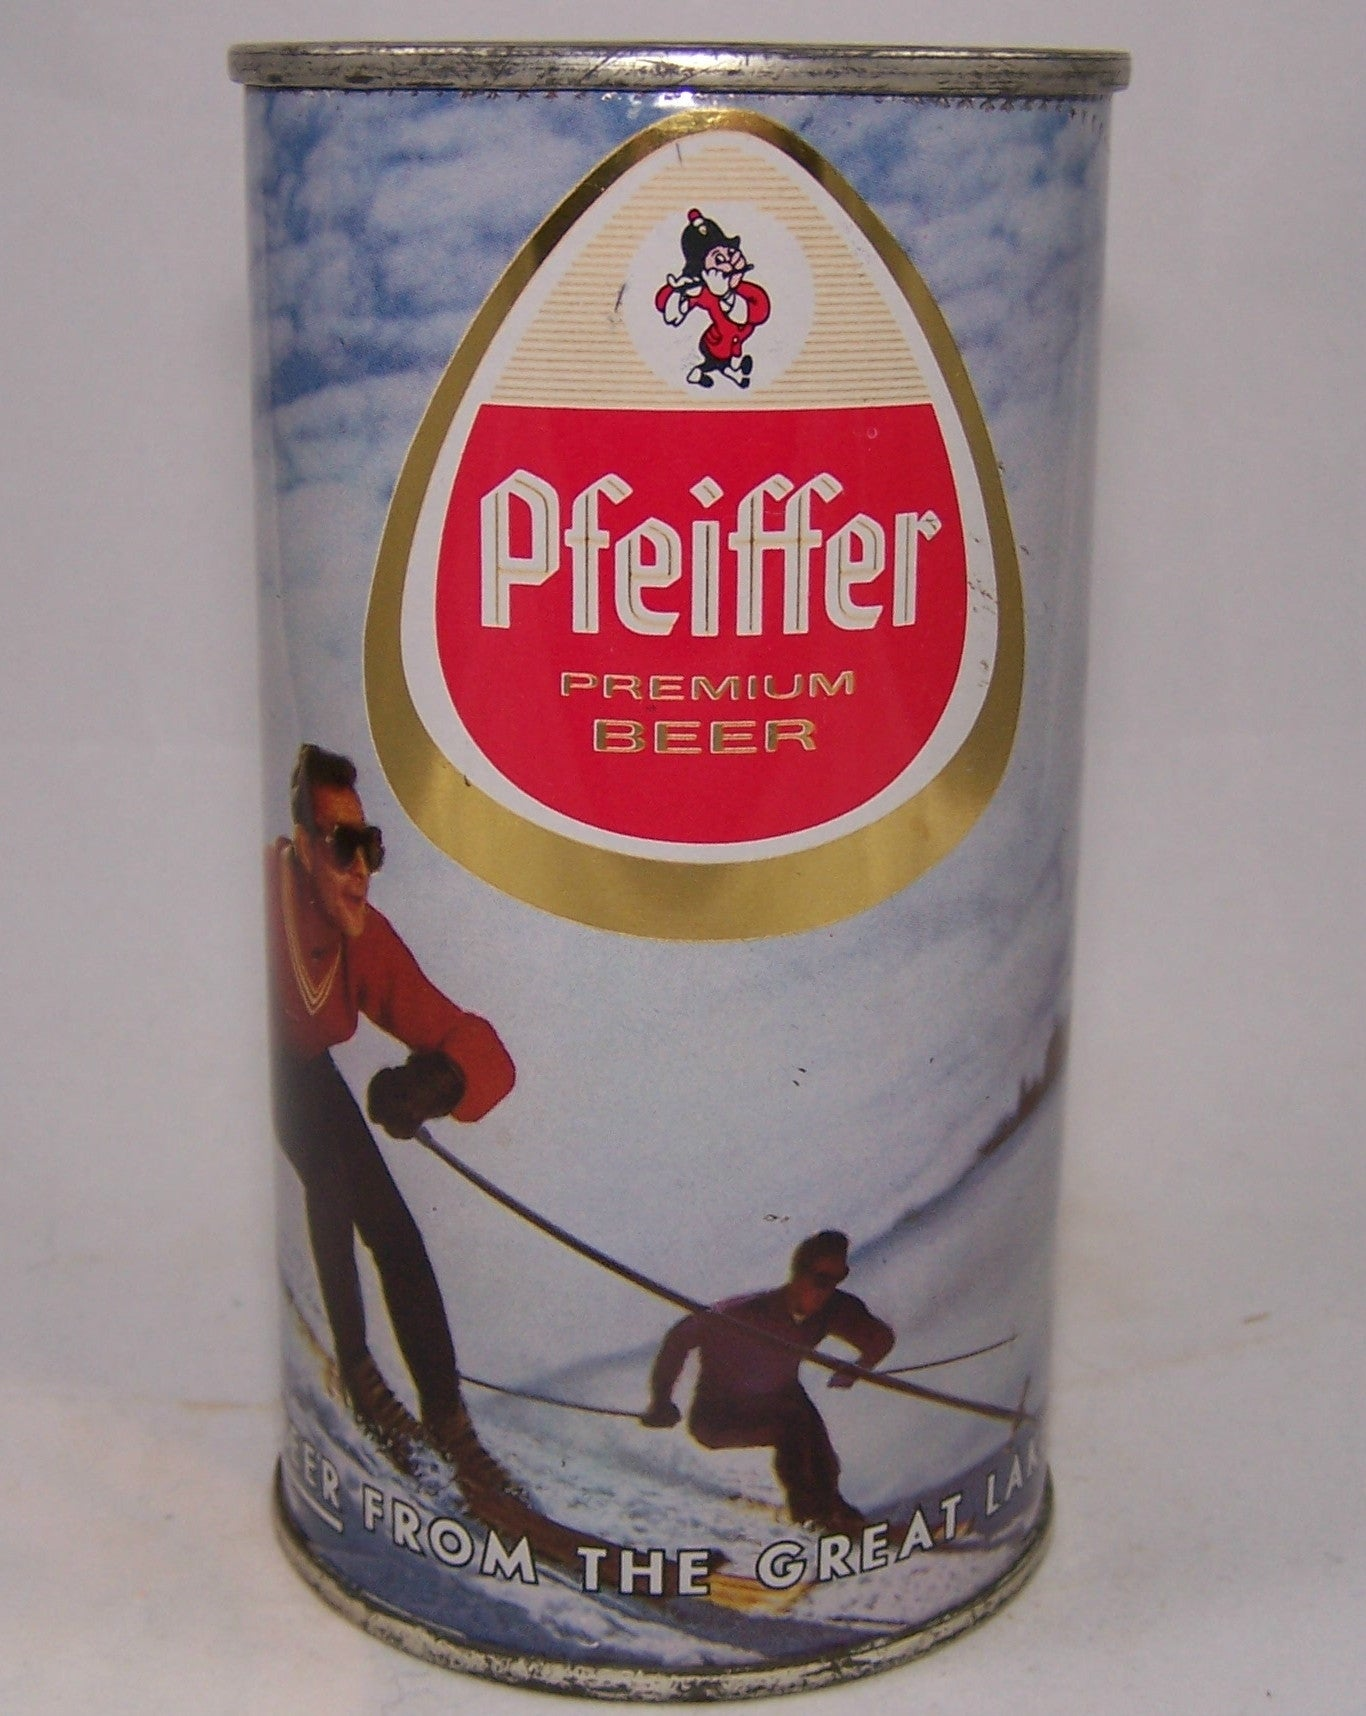 Pfeiffer (metallic) Premium Beer, USBC 114-13, Grade 1 Sold on 9/29/15